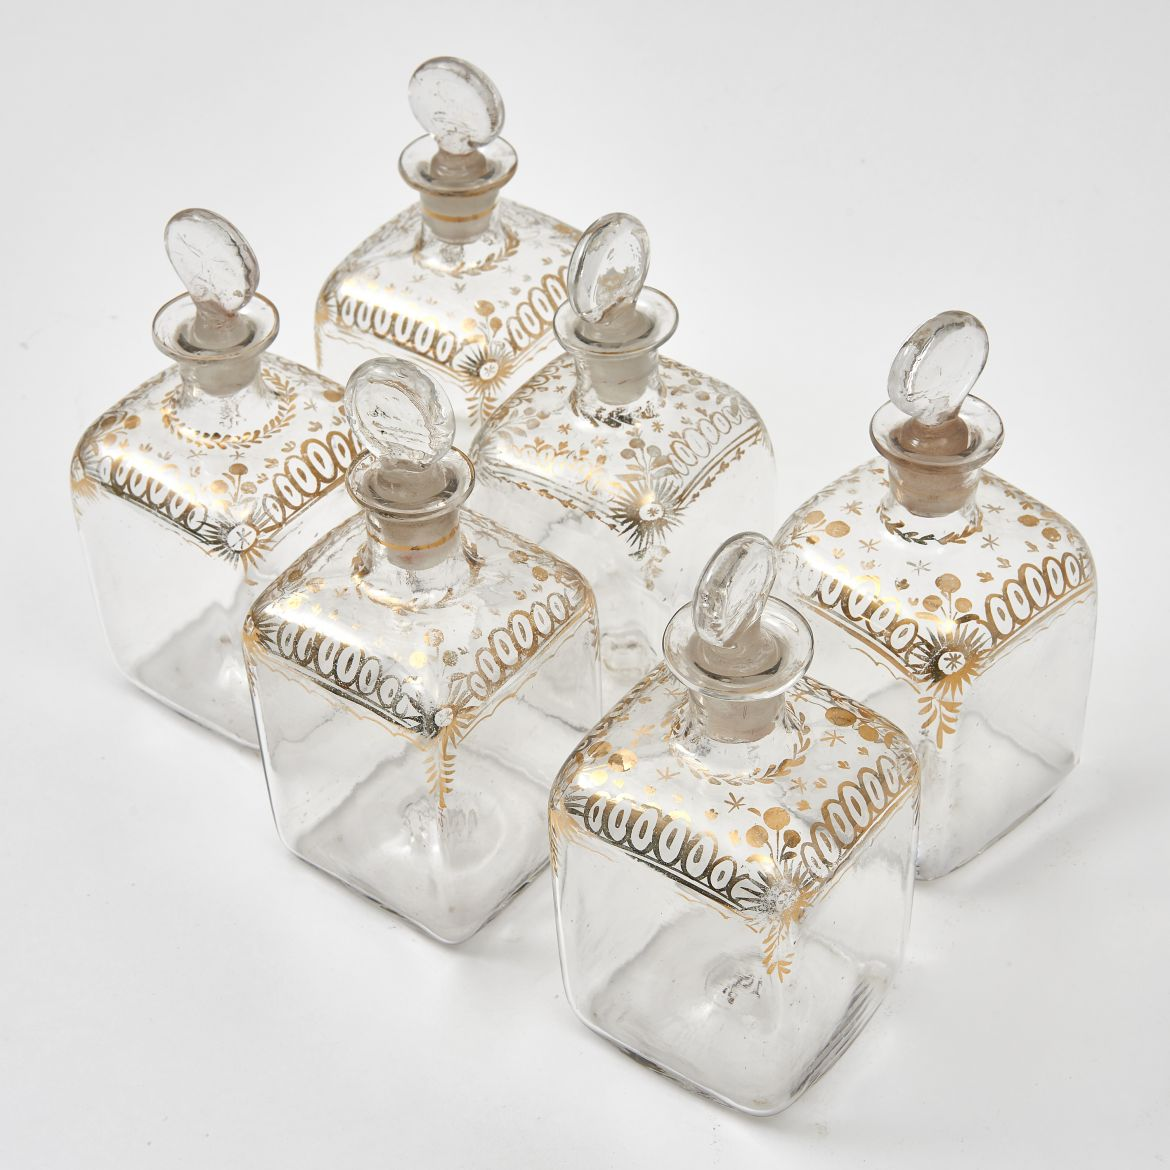 Dutch Glass and Gilt Perfume Bottles